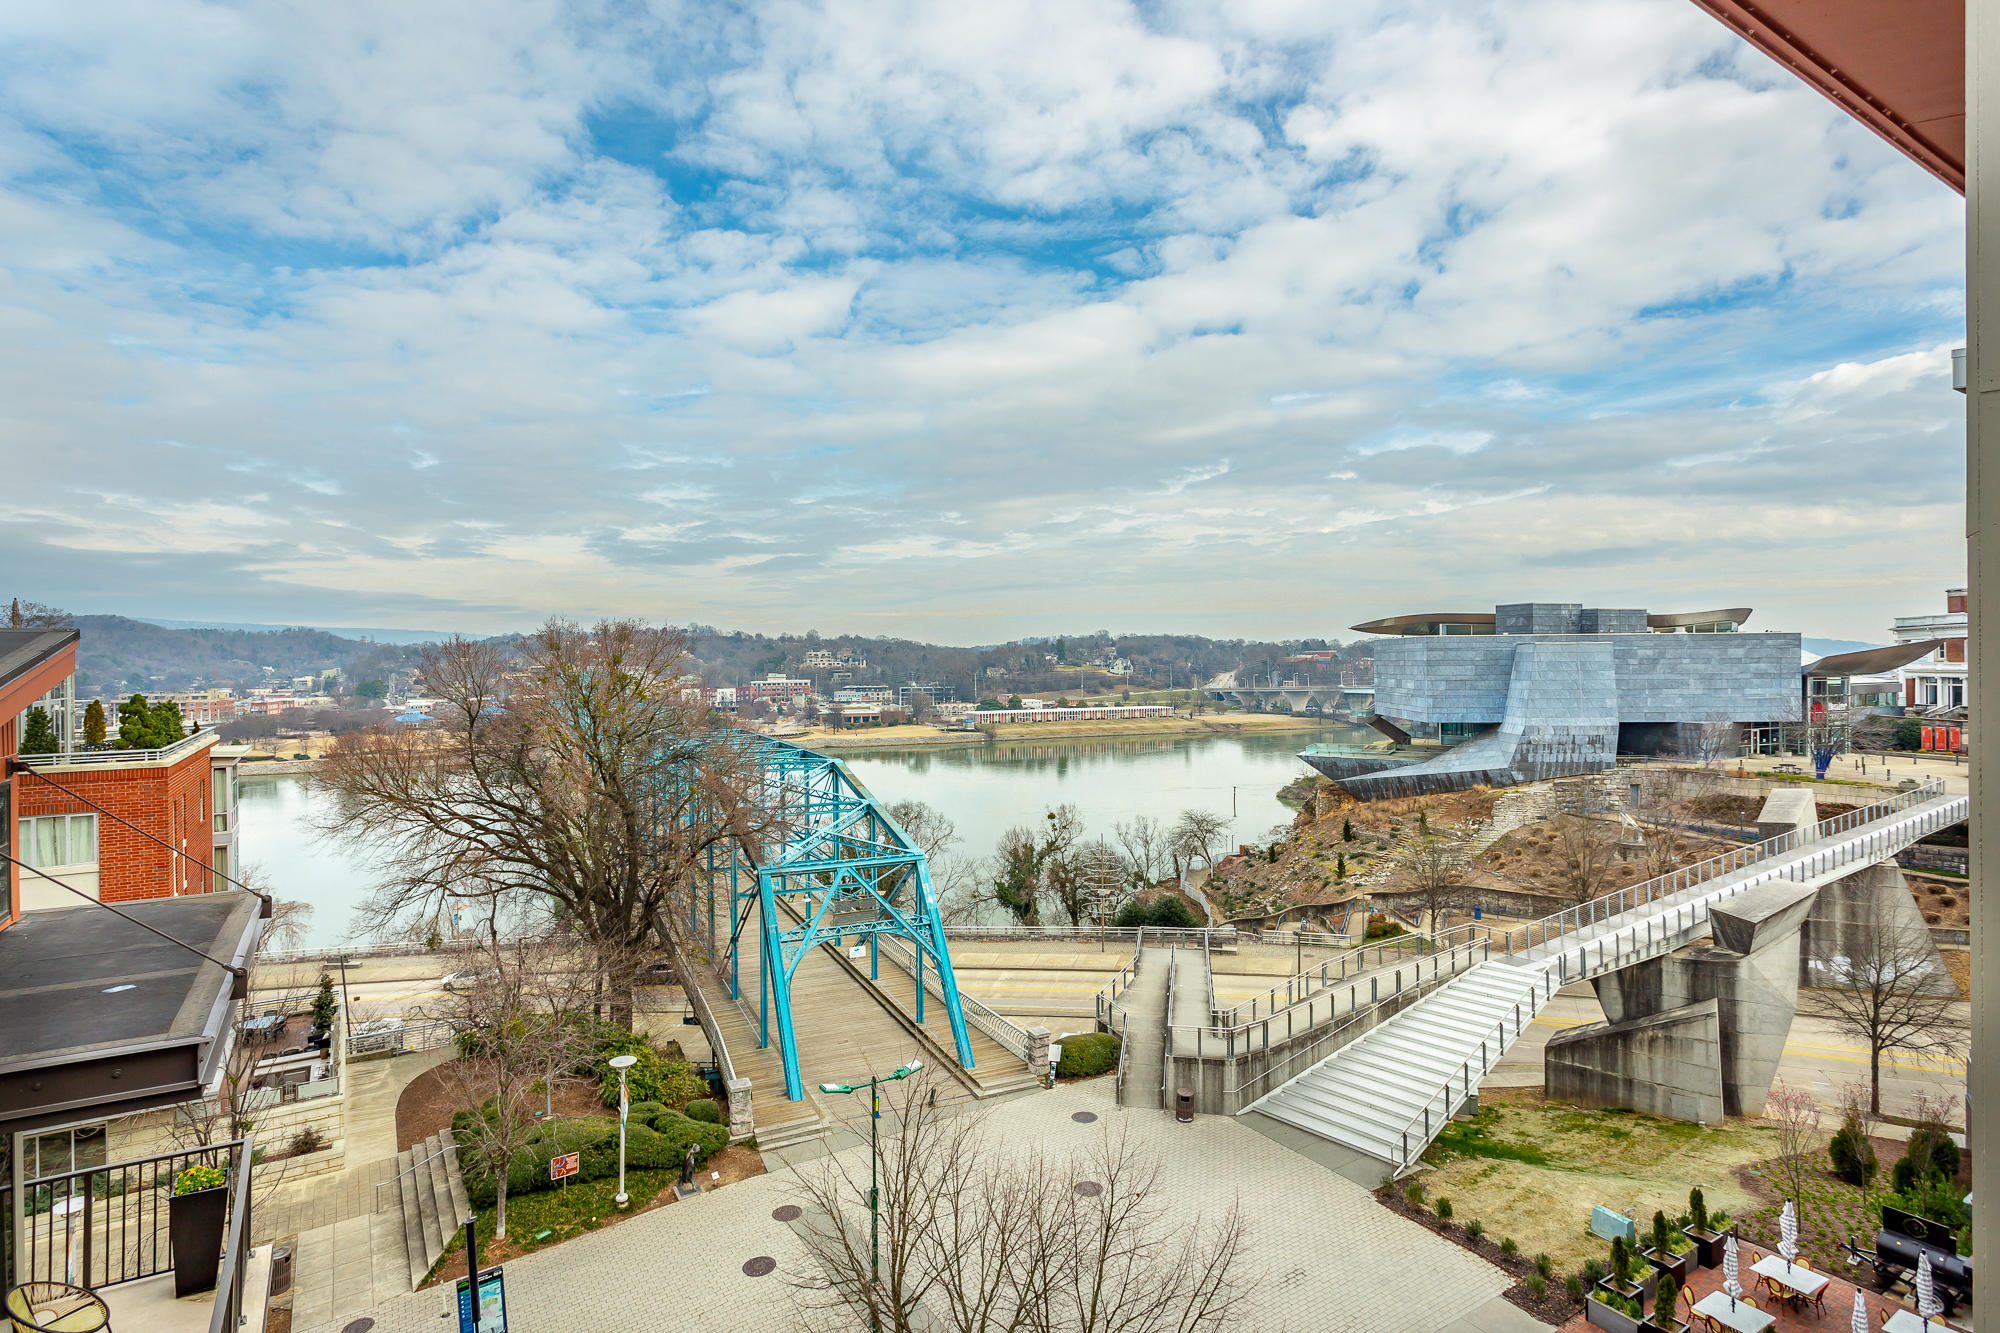 129  Walnut Unit 124 St 37403 - One of Chattanooga Homes for Sale